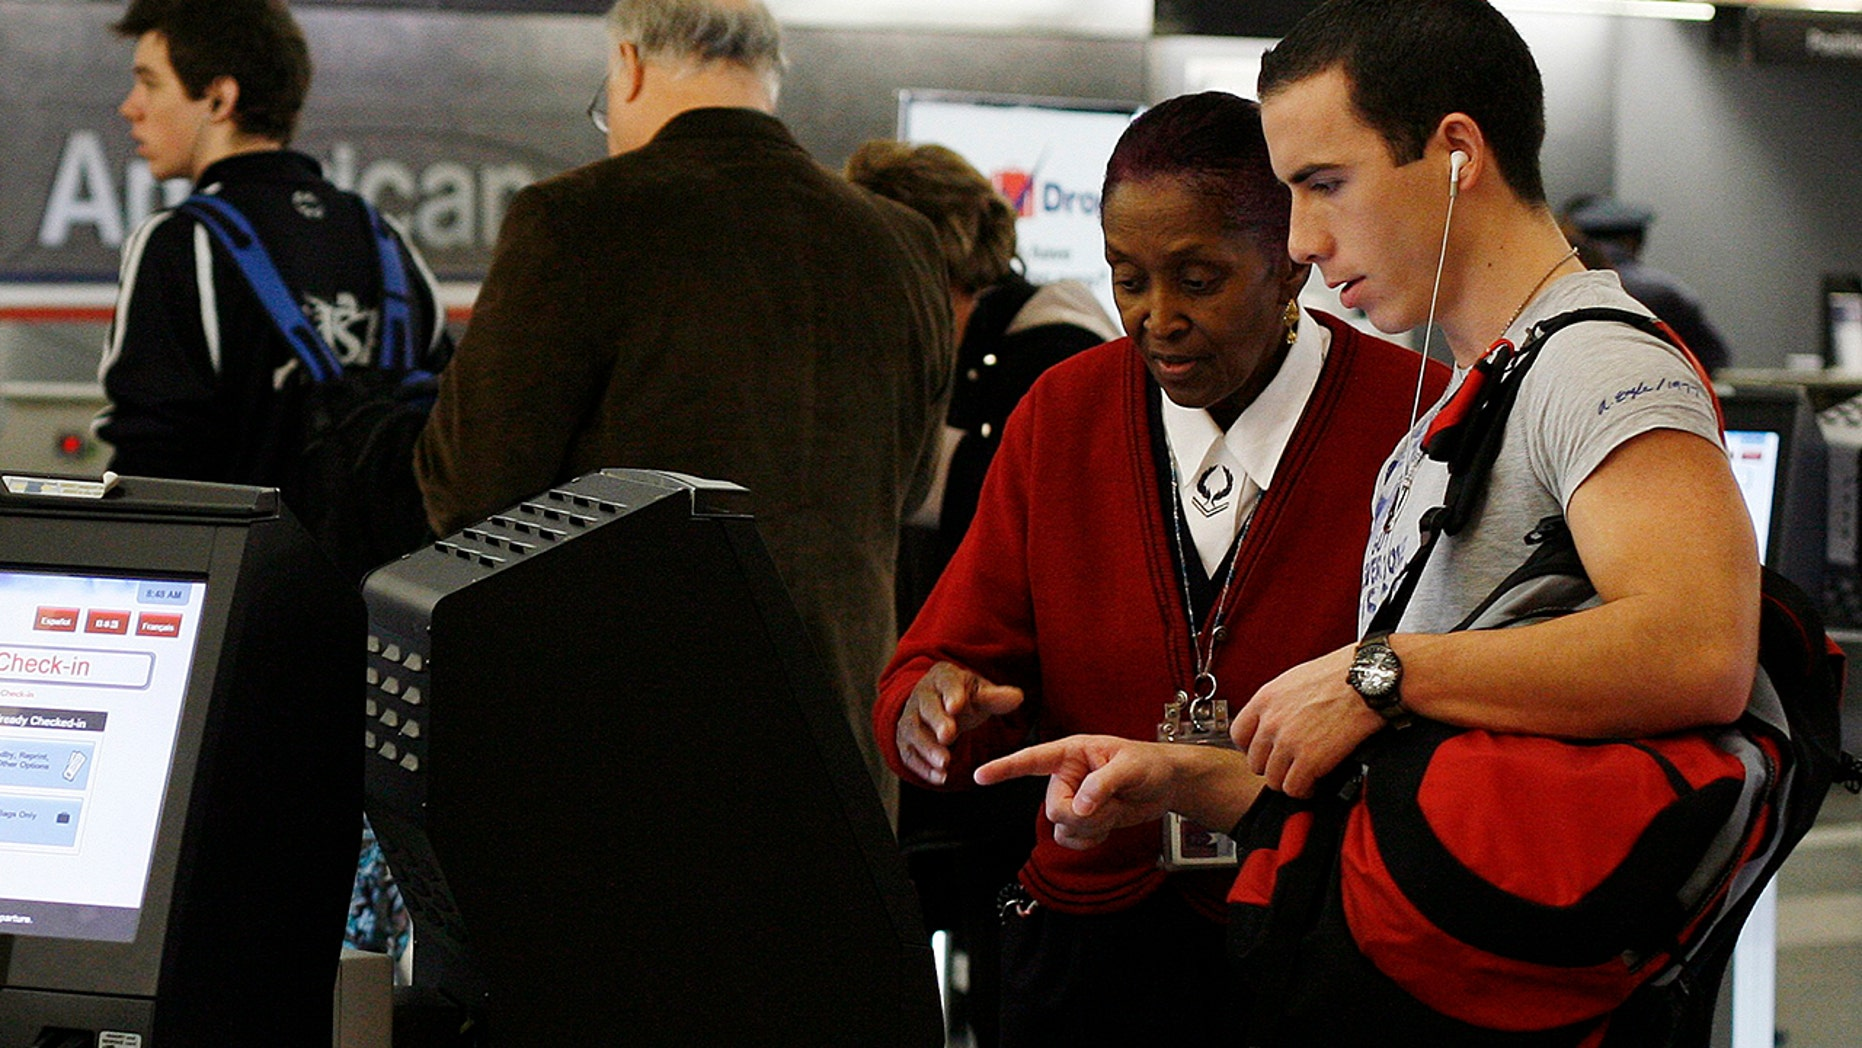 American Airlines is converting to a cashless system at Miami International Airport and at least 50 others locations.